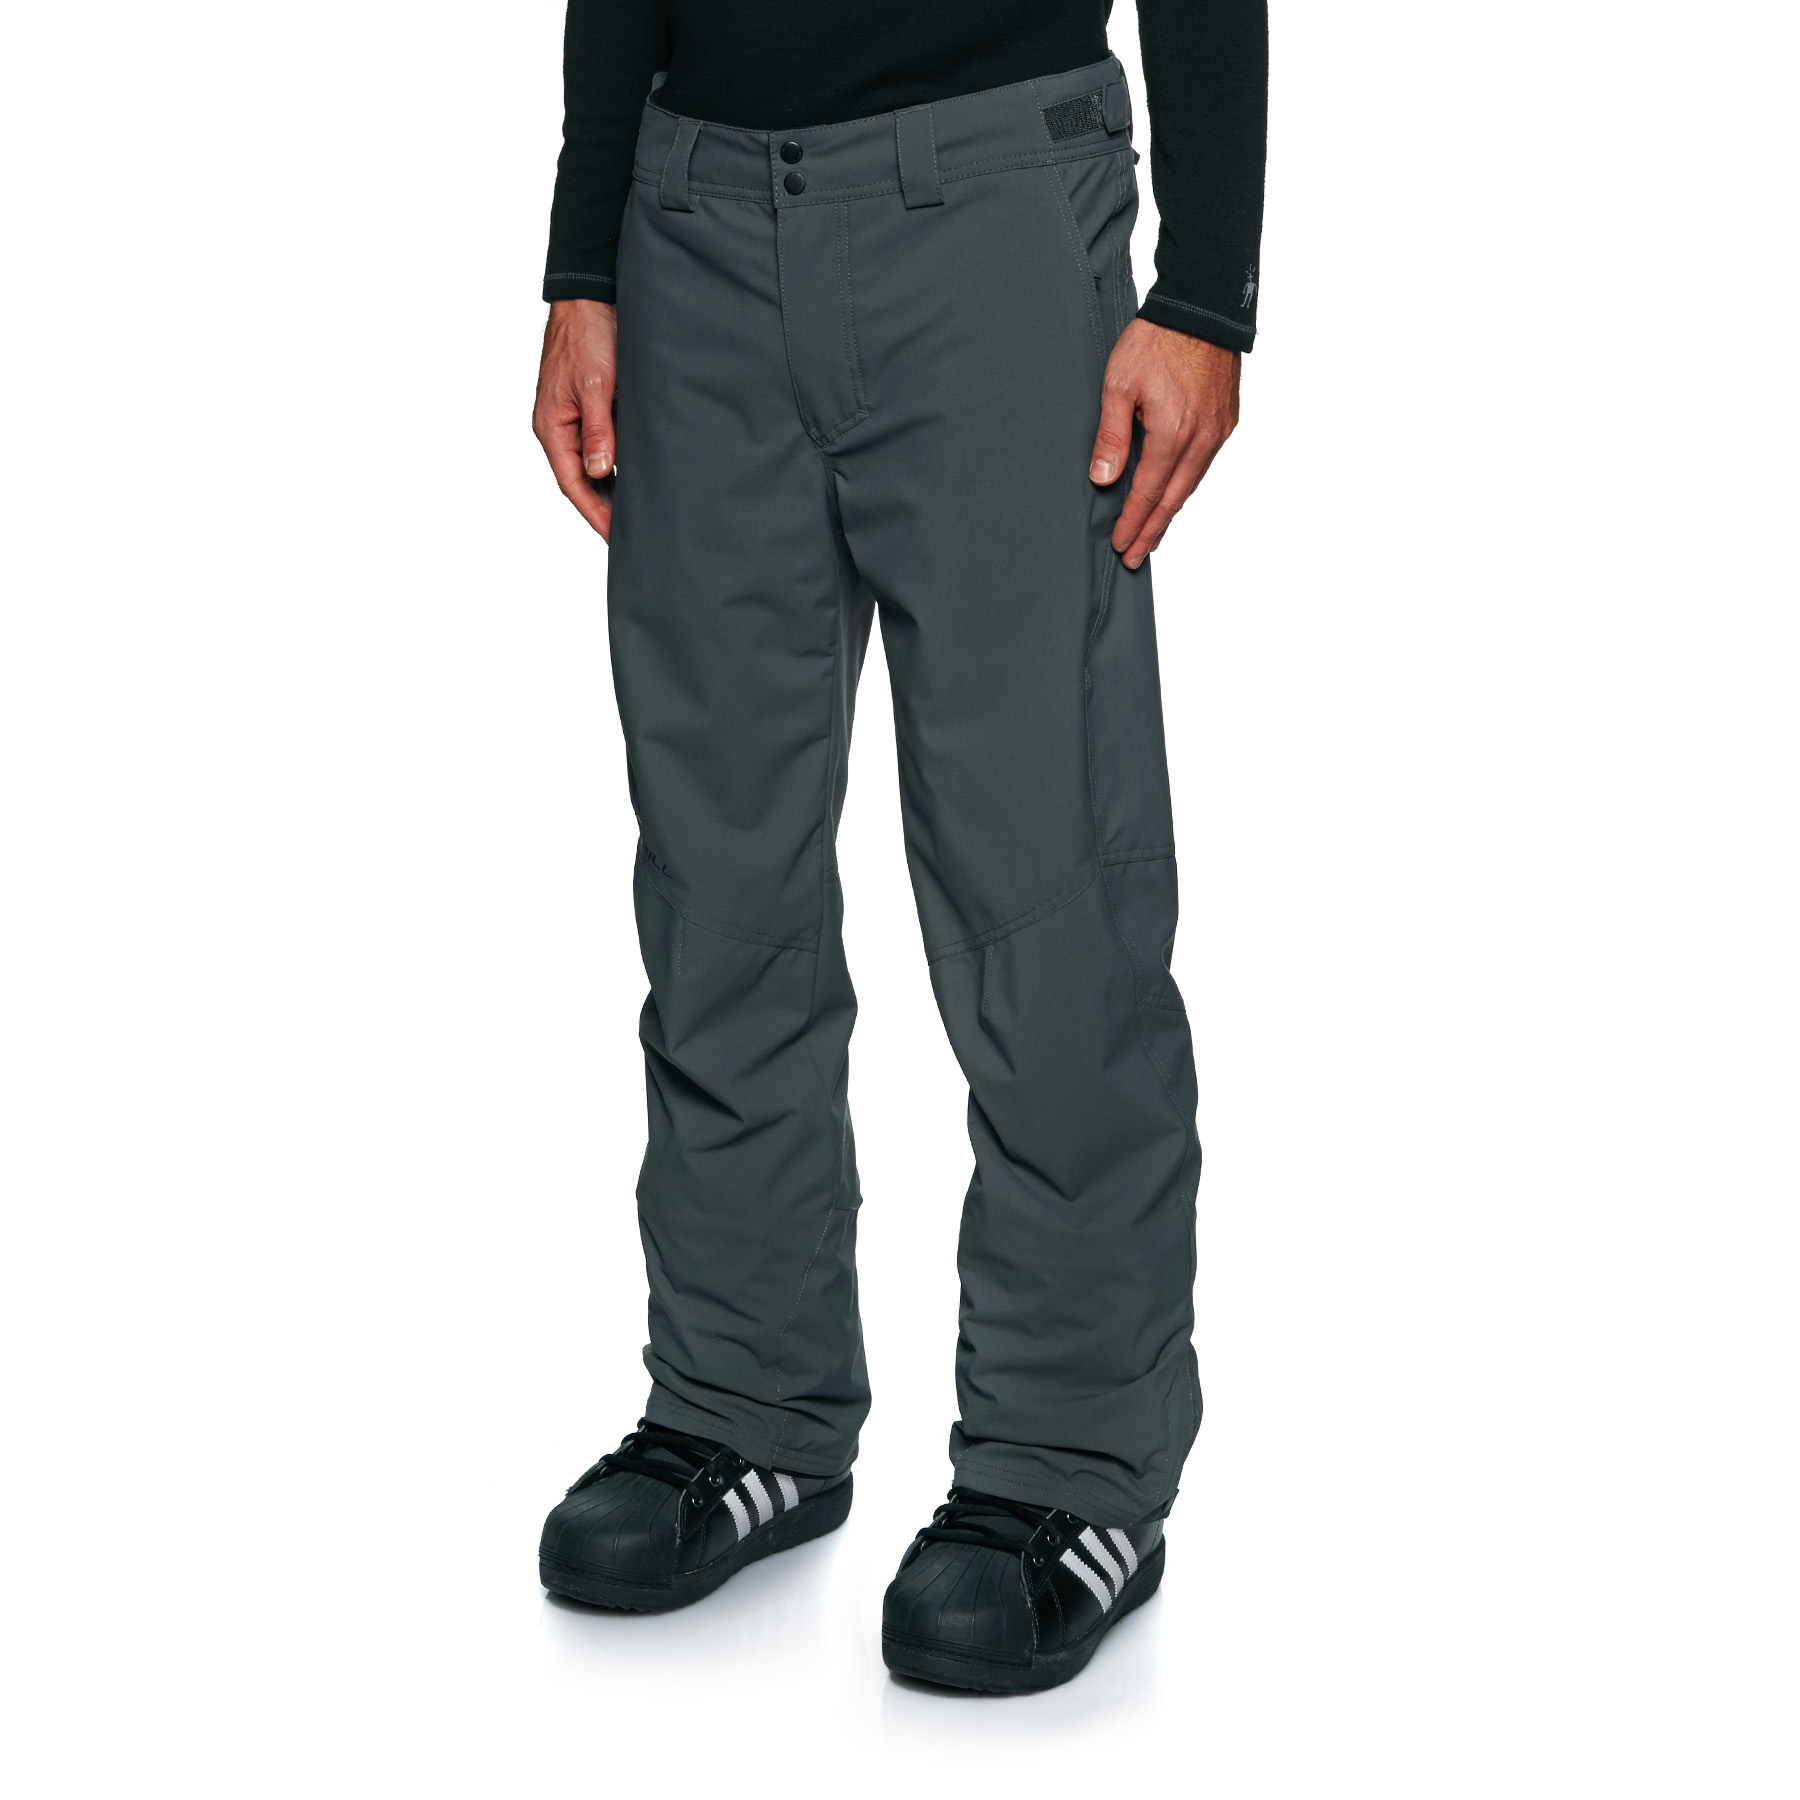 Snowboard Pants | Free Delivery available from Surfdome